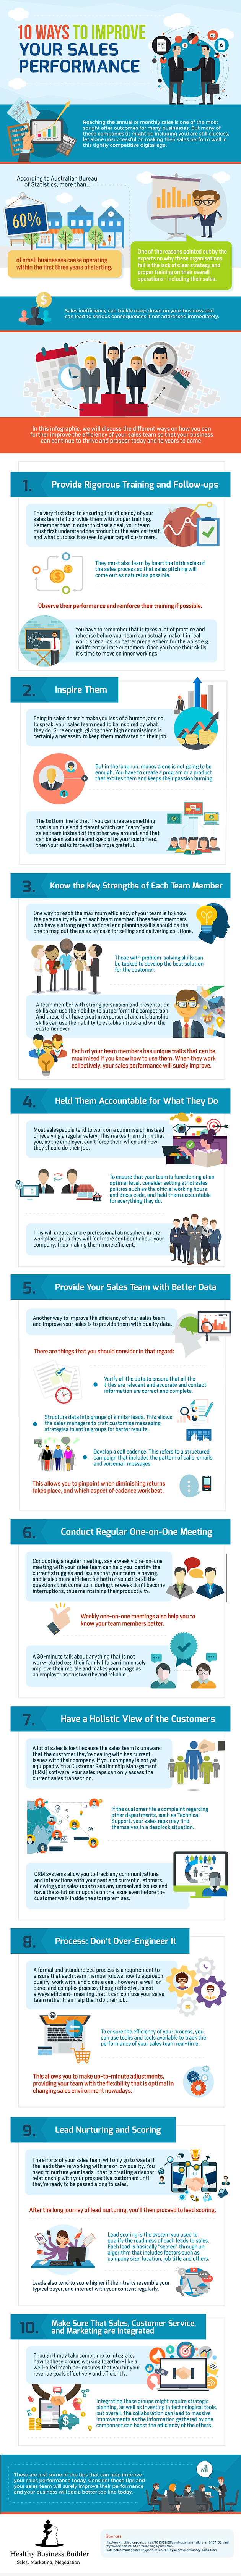 10 Ways to Improve Your Sales Performance